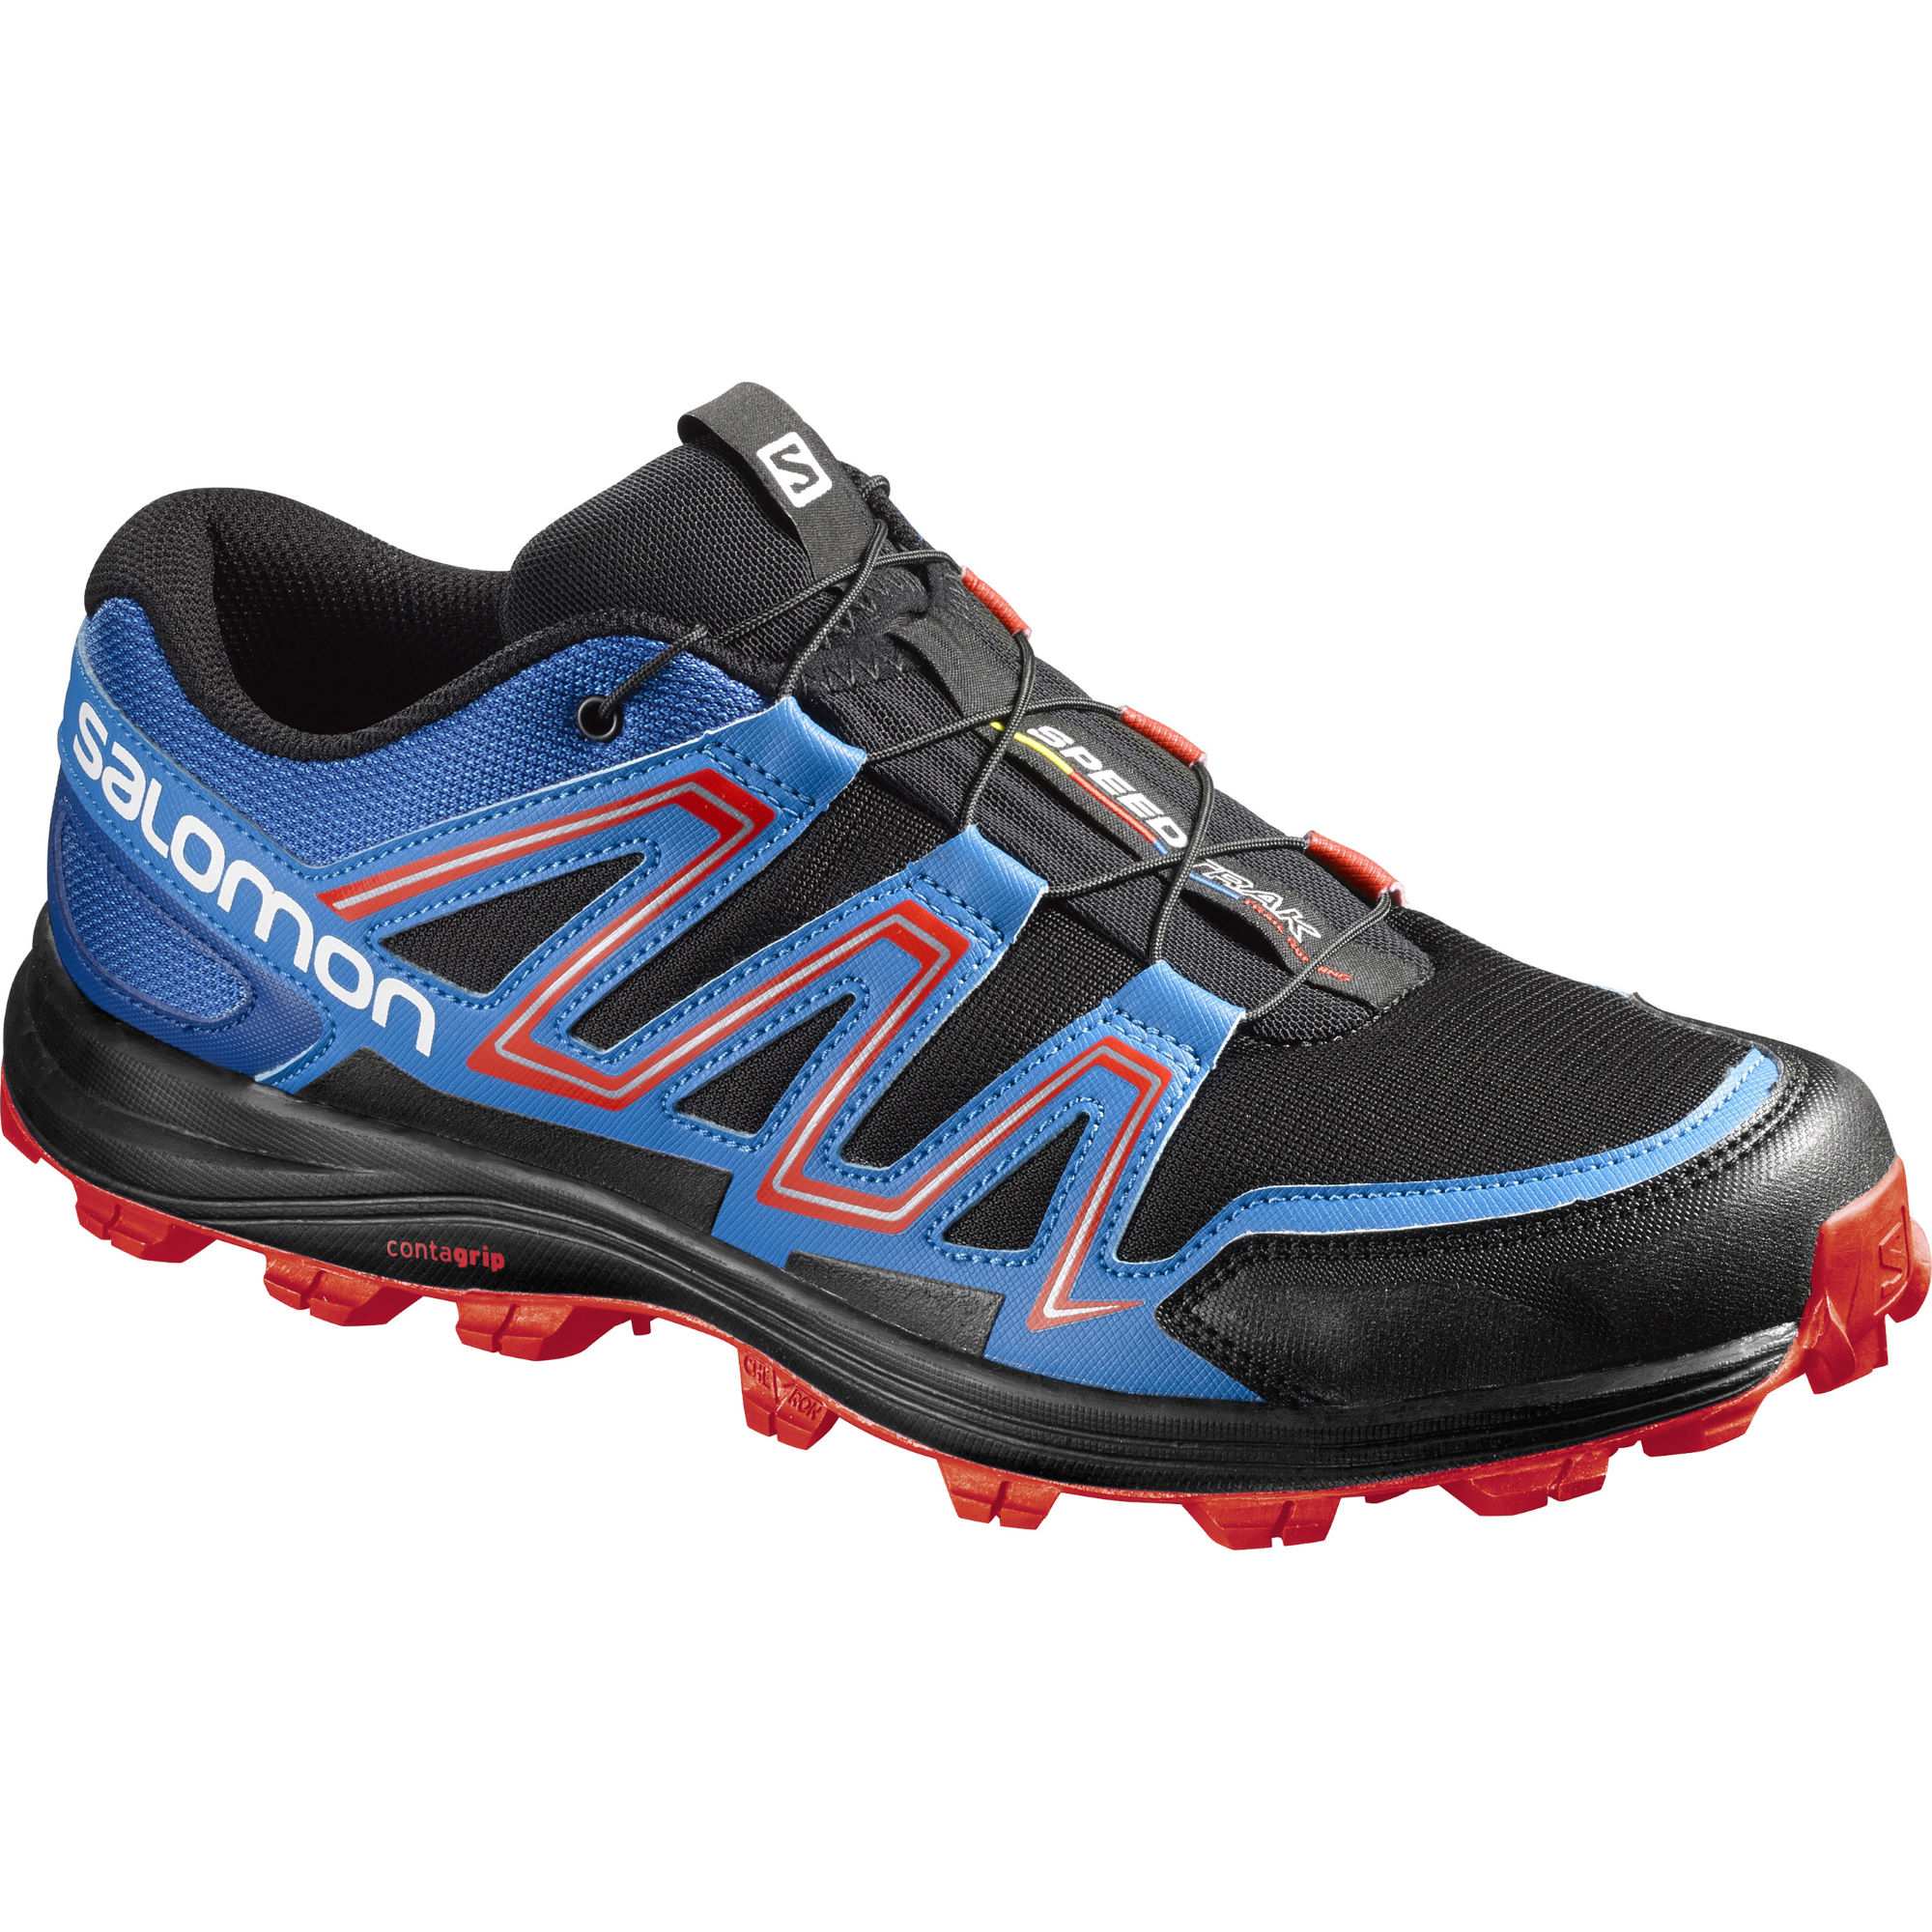 Low Profile Running Shoes Reviews